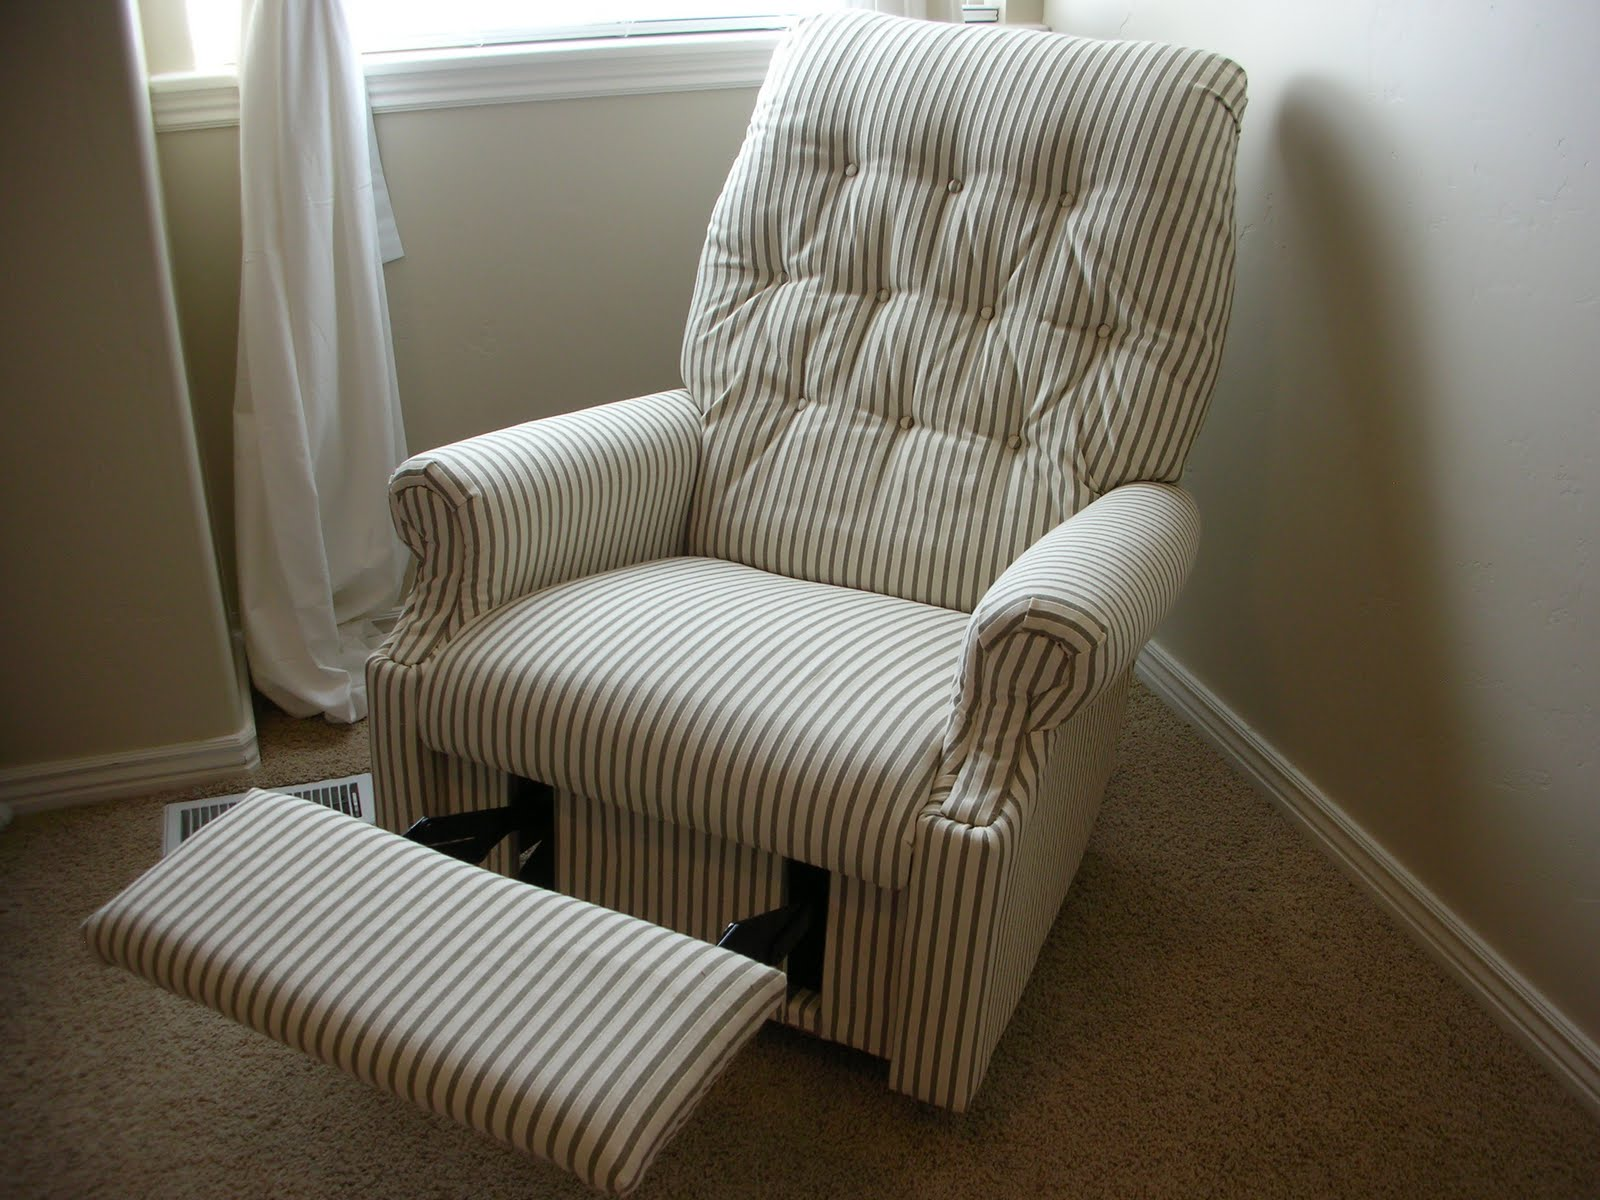 Do it yourself divas diy reupholster an old la z boy recliner Reupholster loveseat